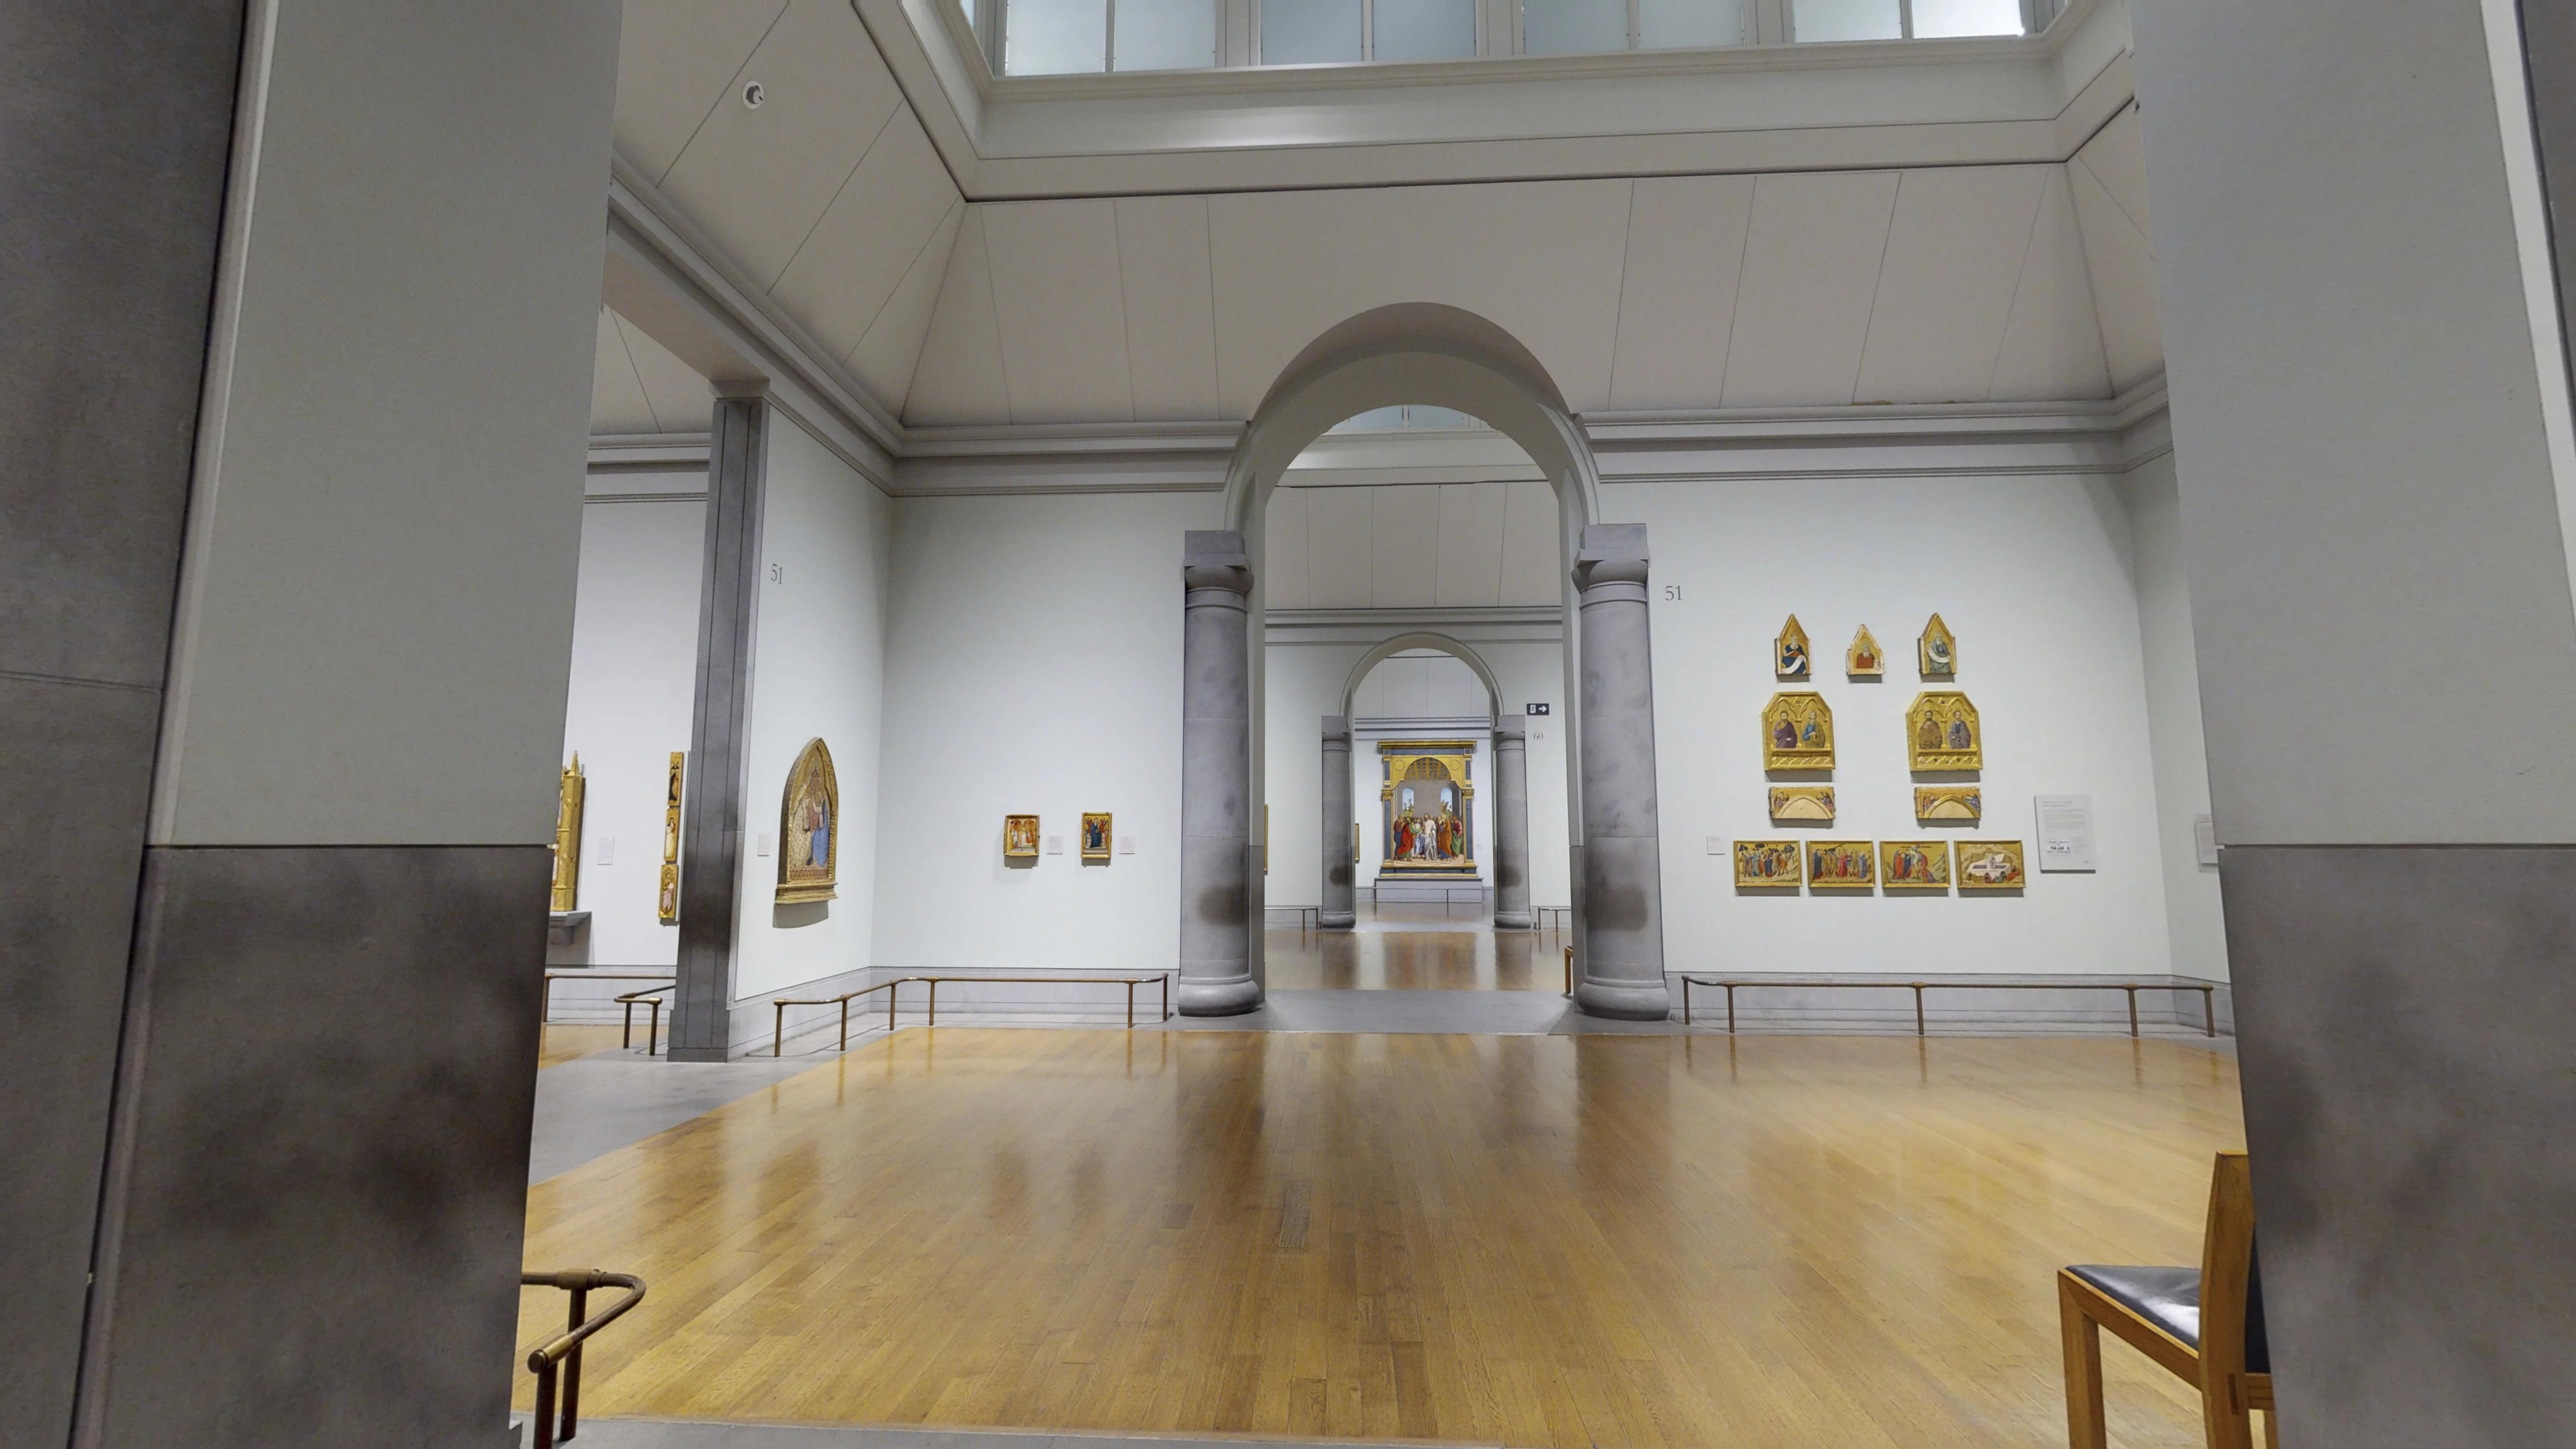 The National Gallery (Sainsbury Wing)